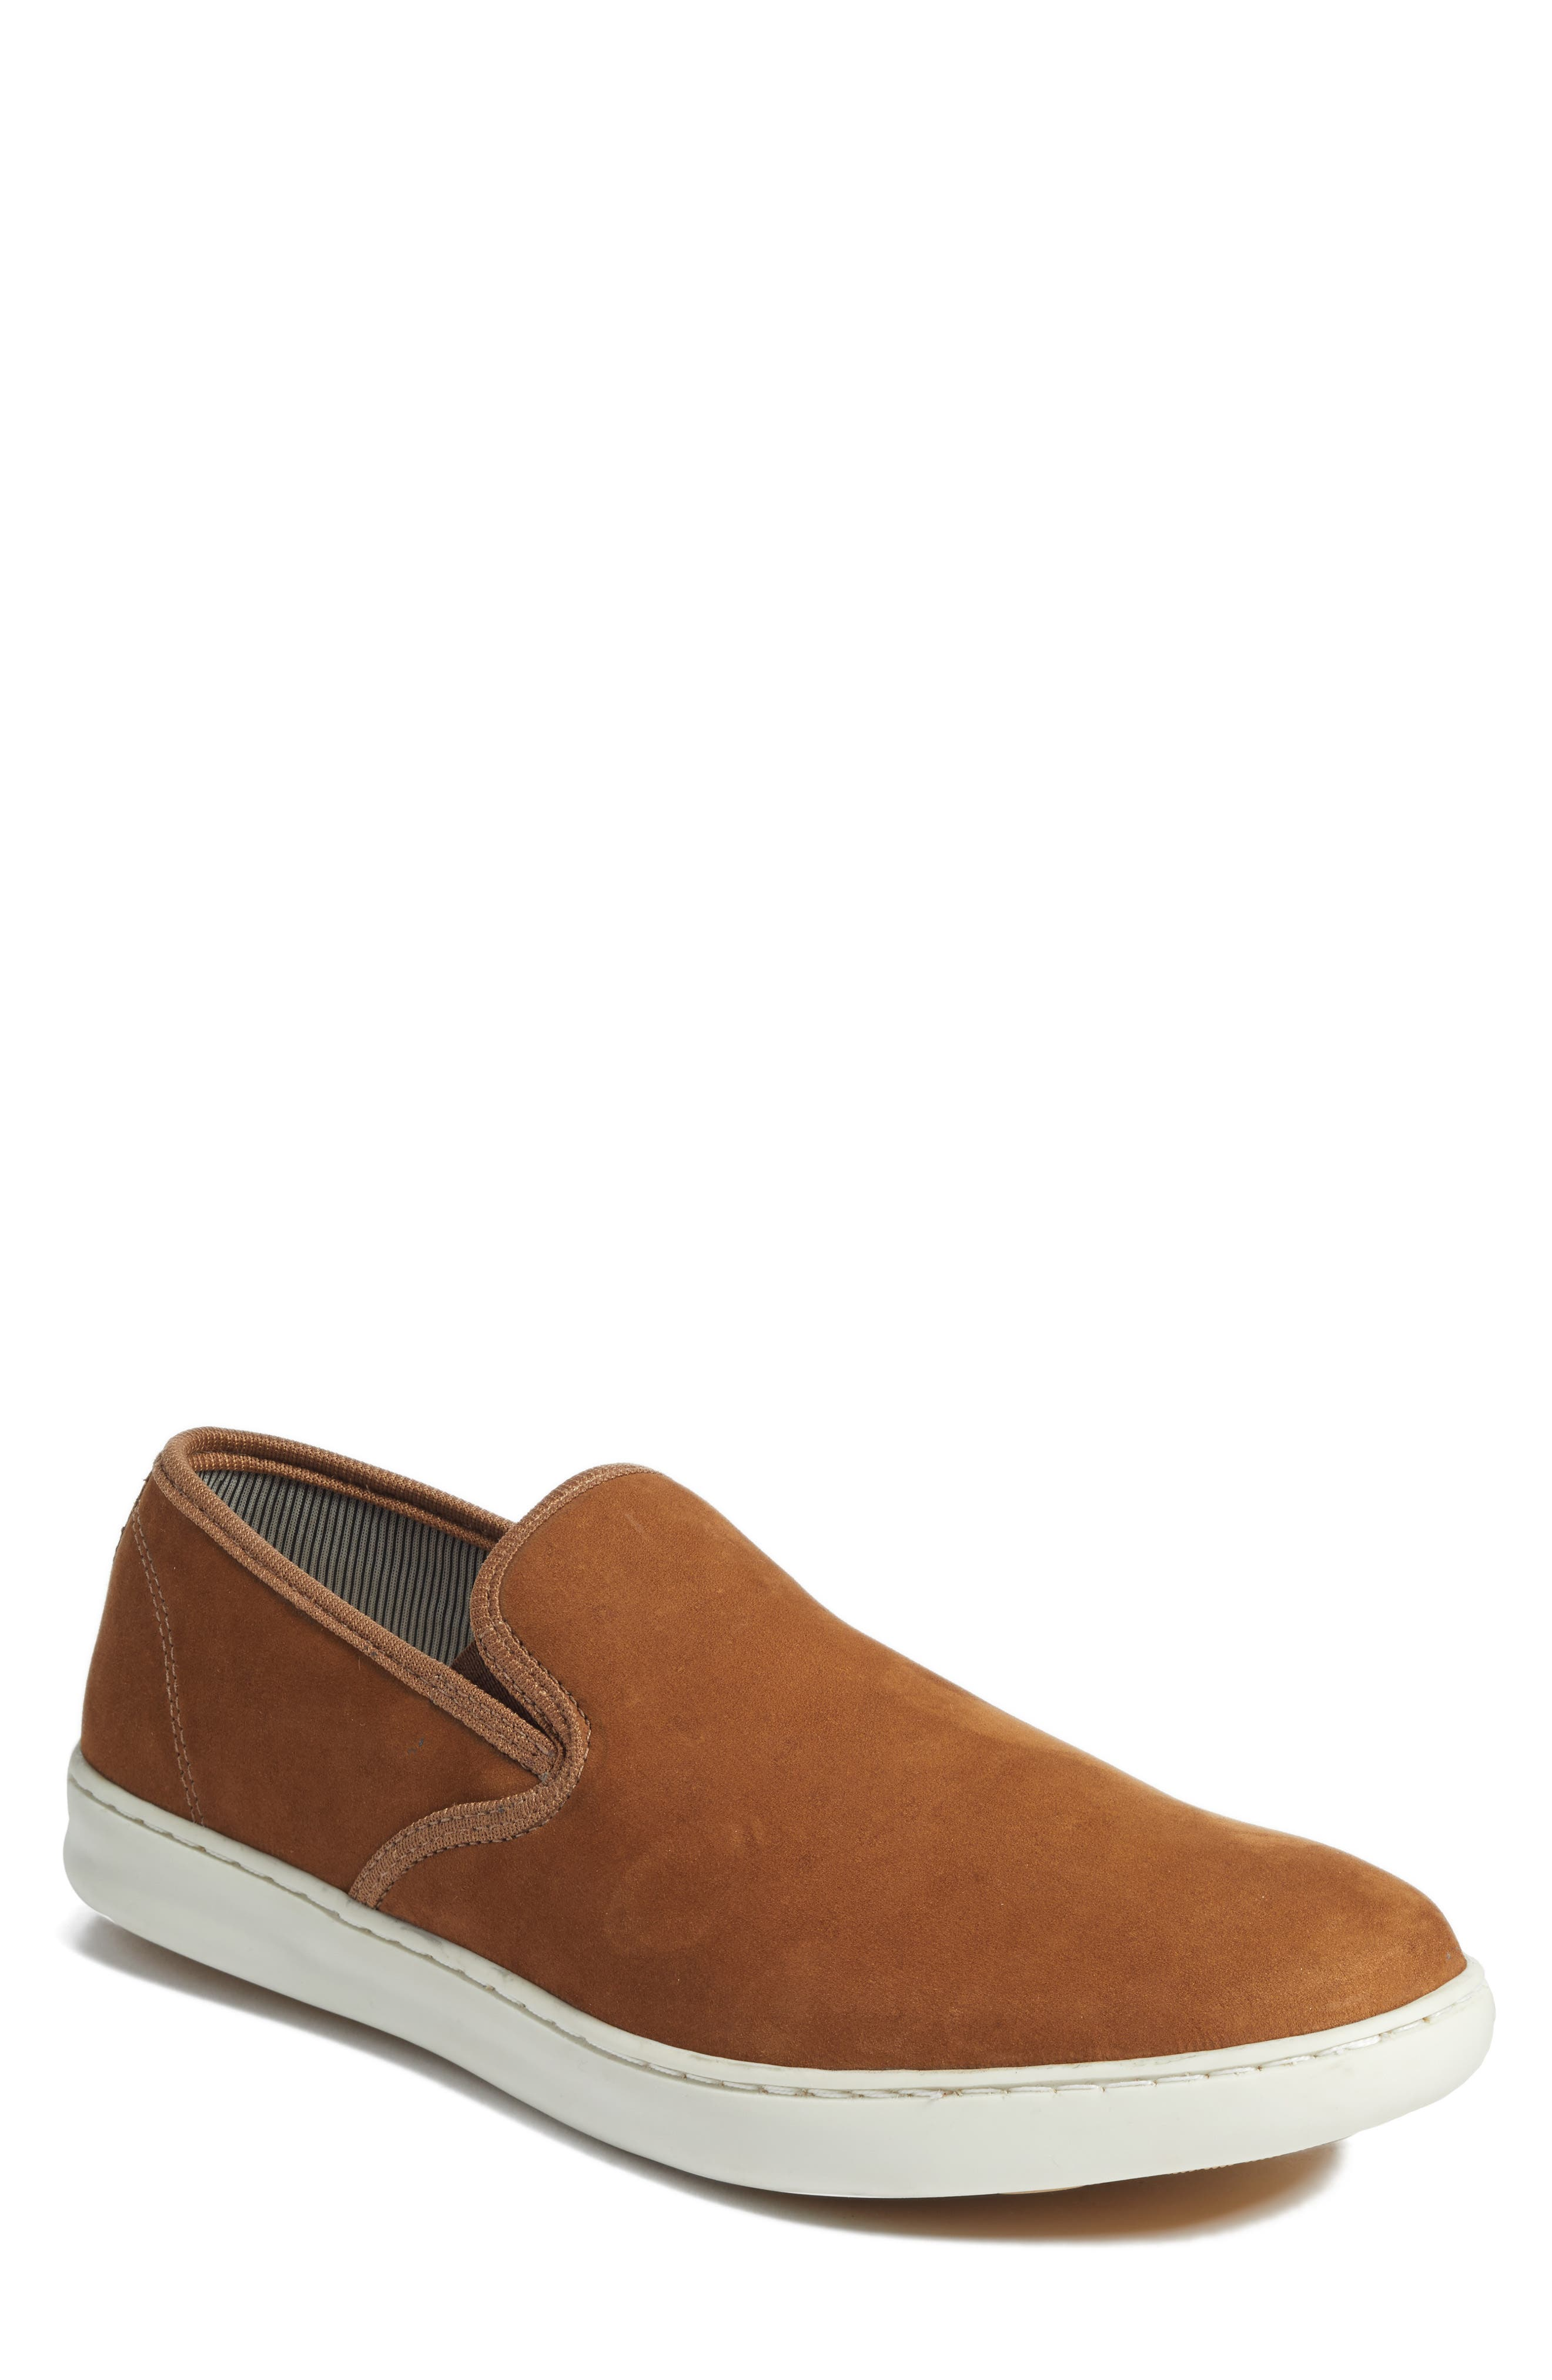 Malibu Slip-on,                         Main,                         color, Tan Nubuck